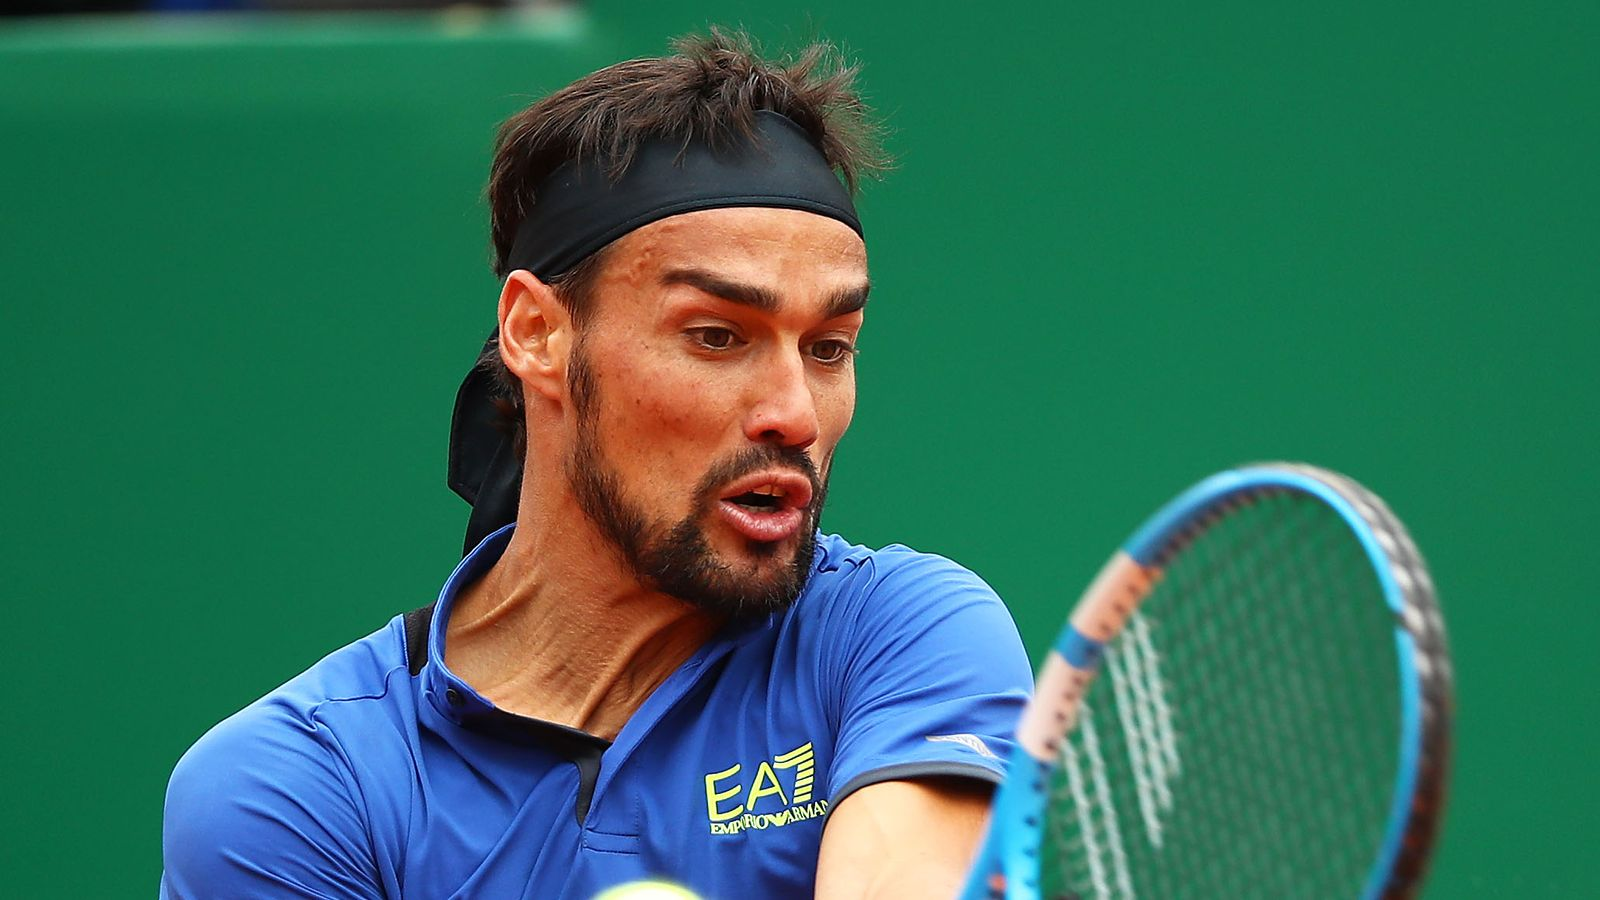 Fabio Fognini undergoes surgery on both ankles